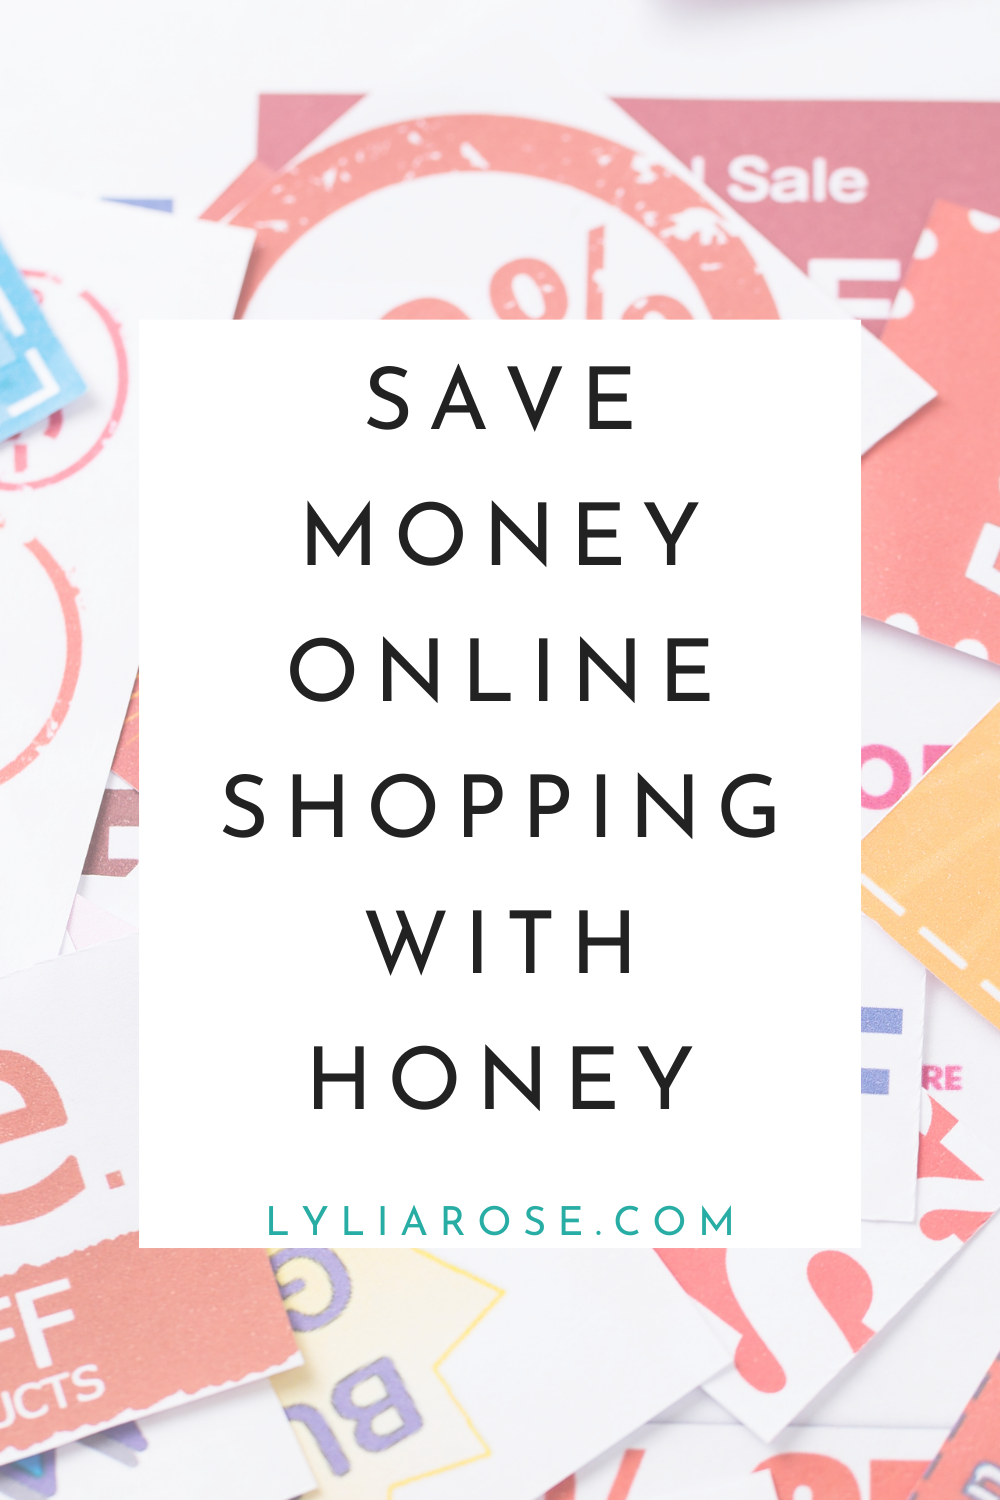 Save money online shopping with Honey